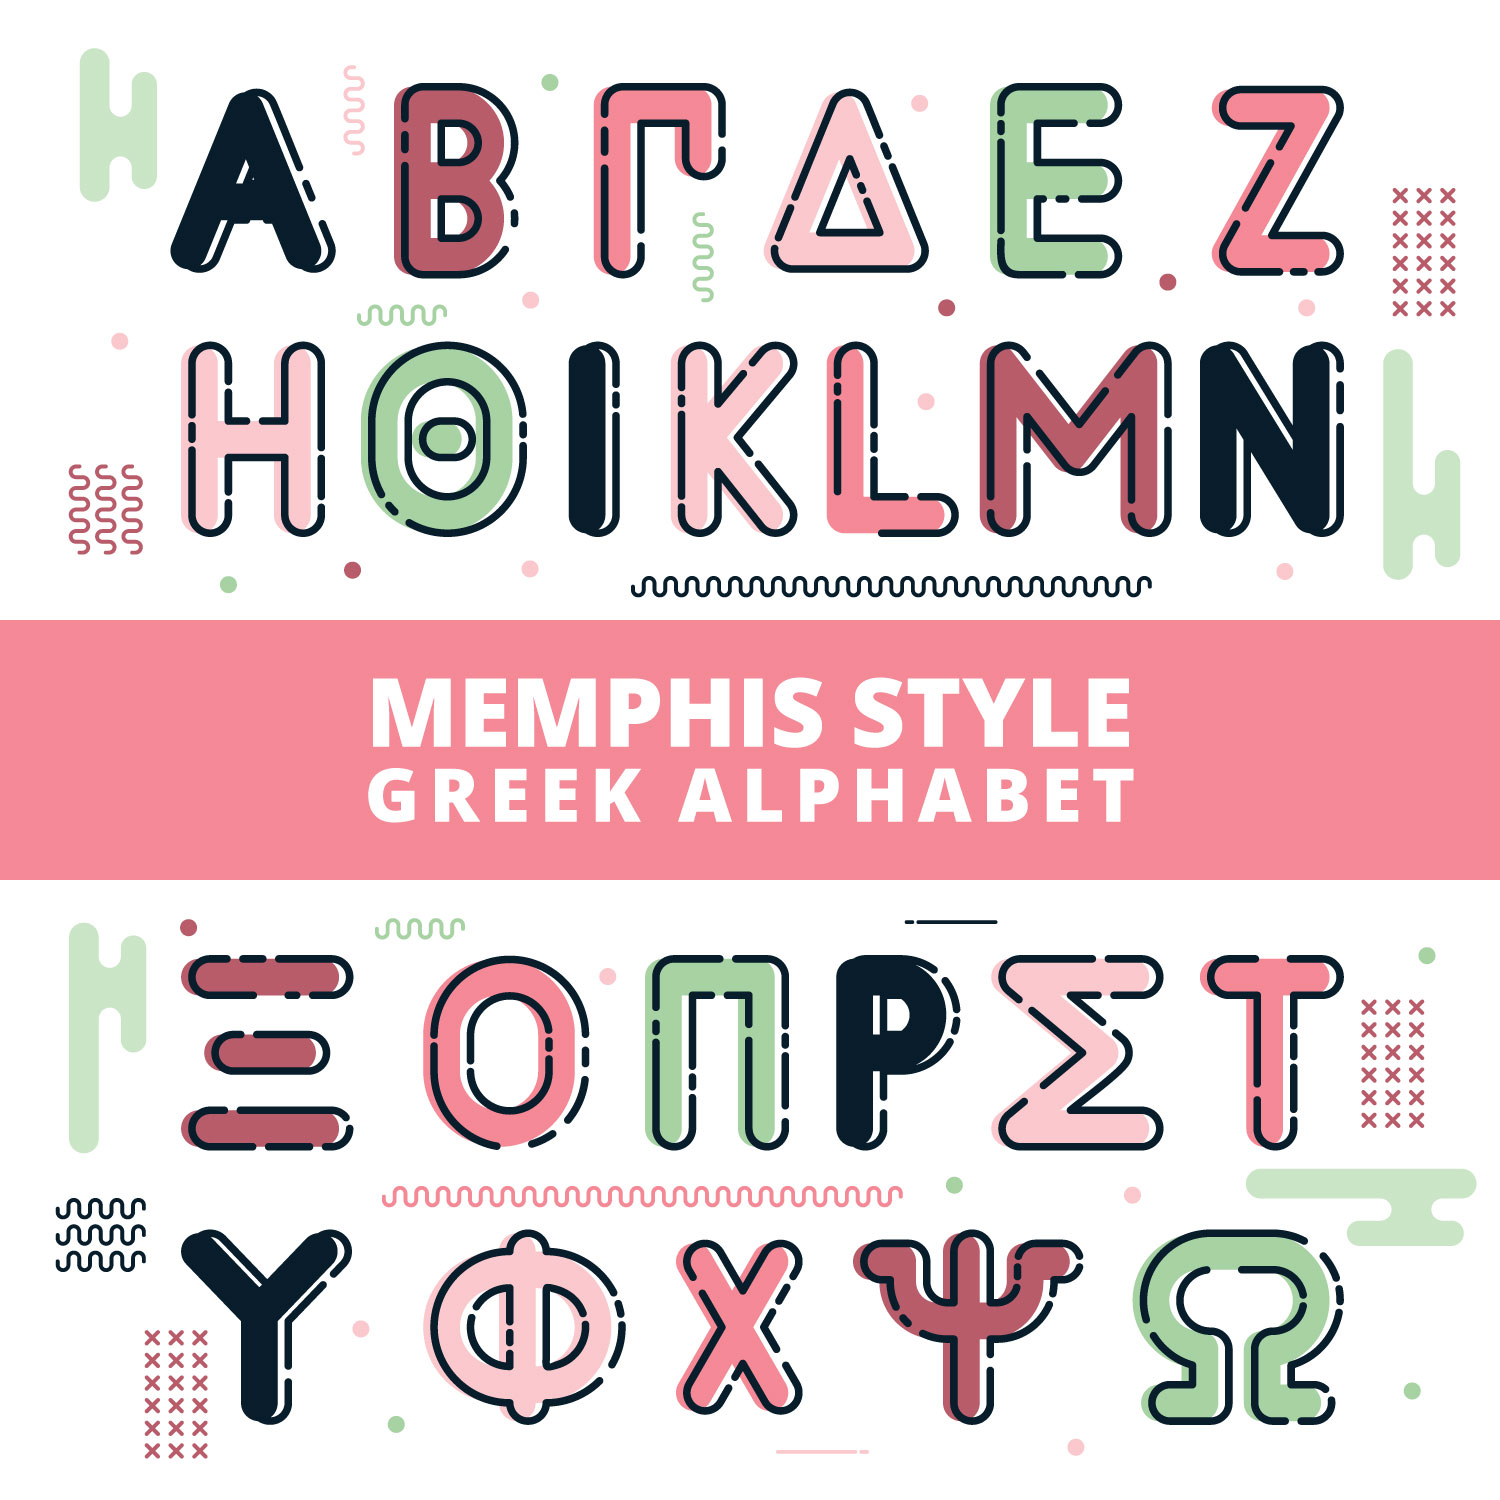 Memphis Style Greek Alphabet - Download Free Vector Art, Stock ...